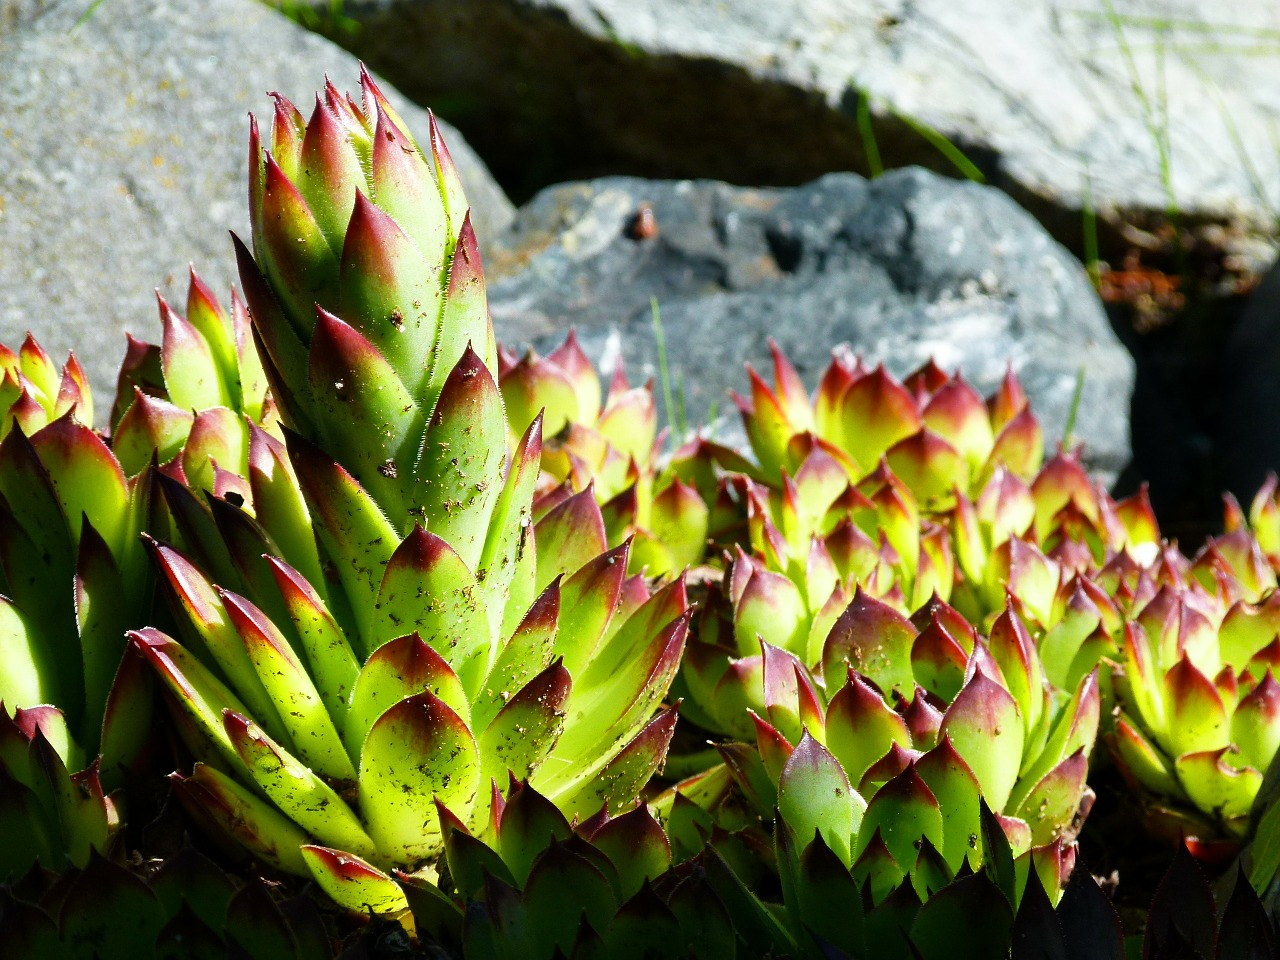 hens and chicks succulent plant nature free photo